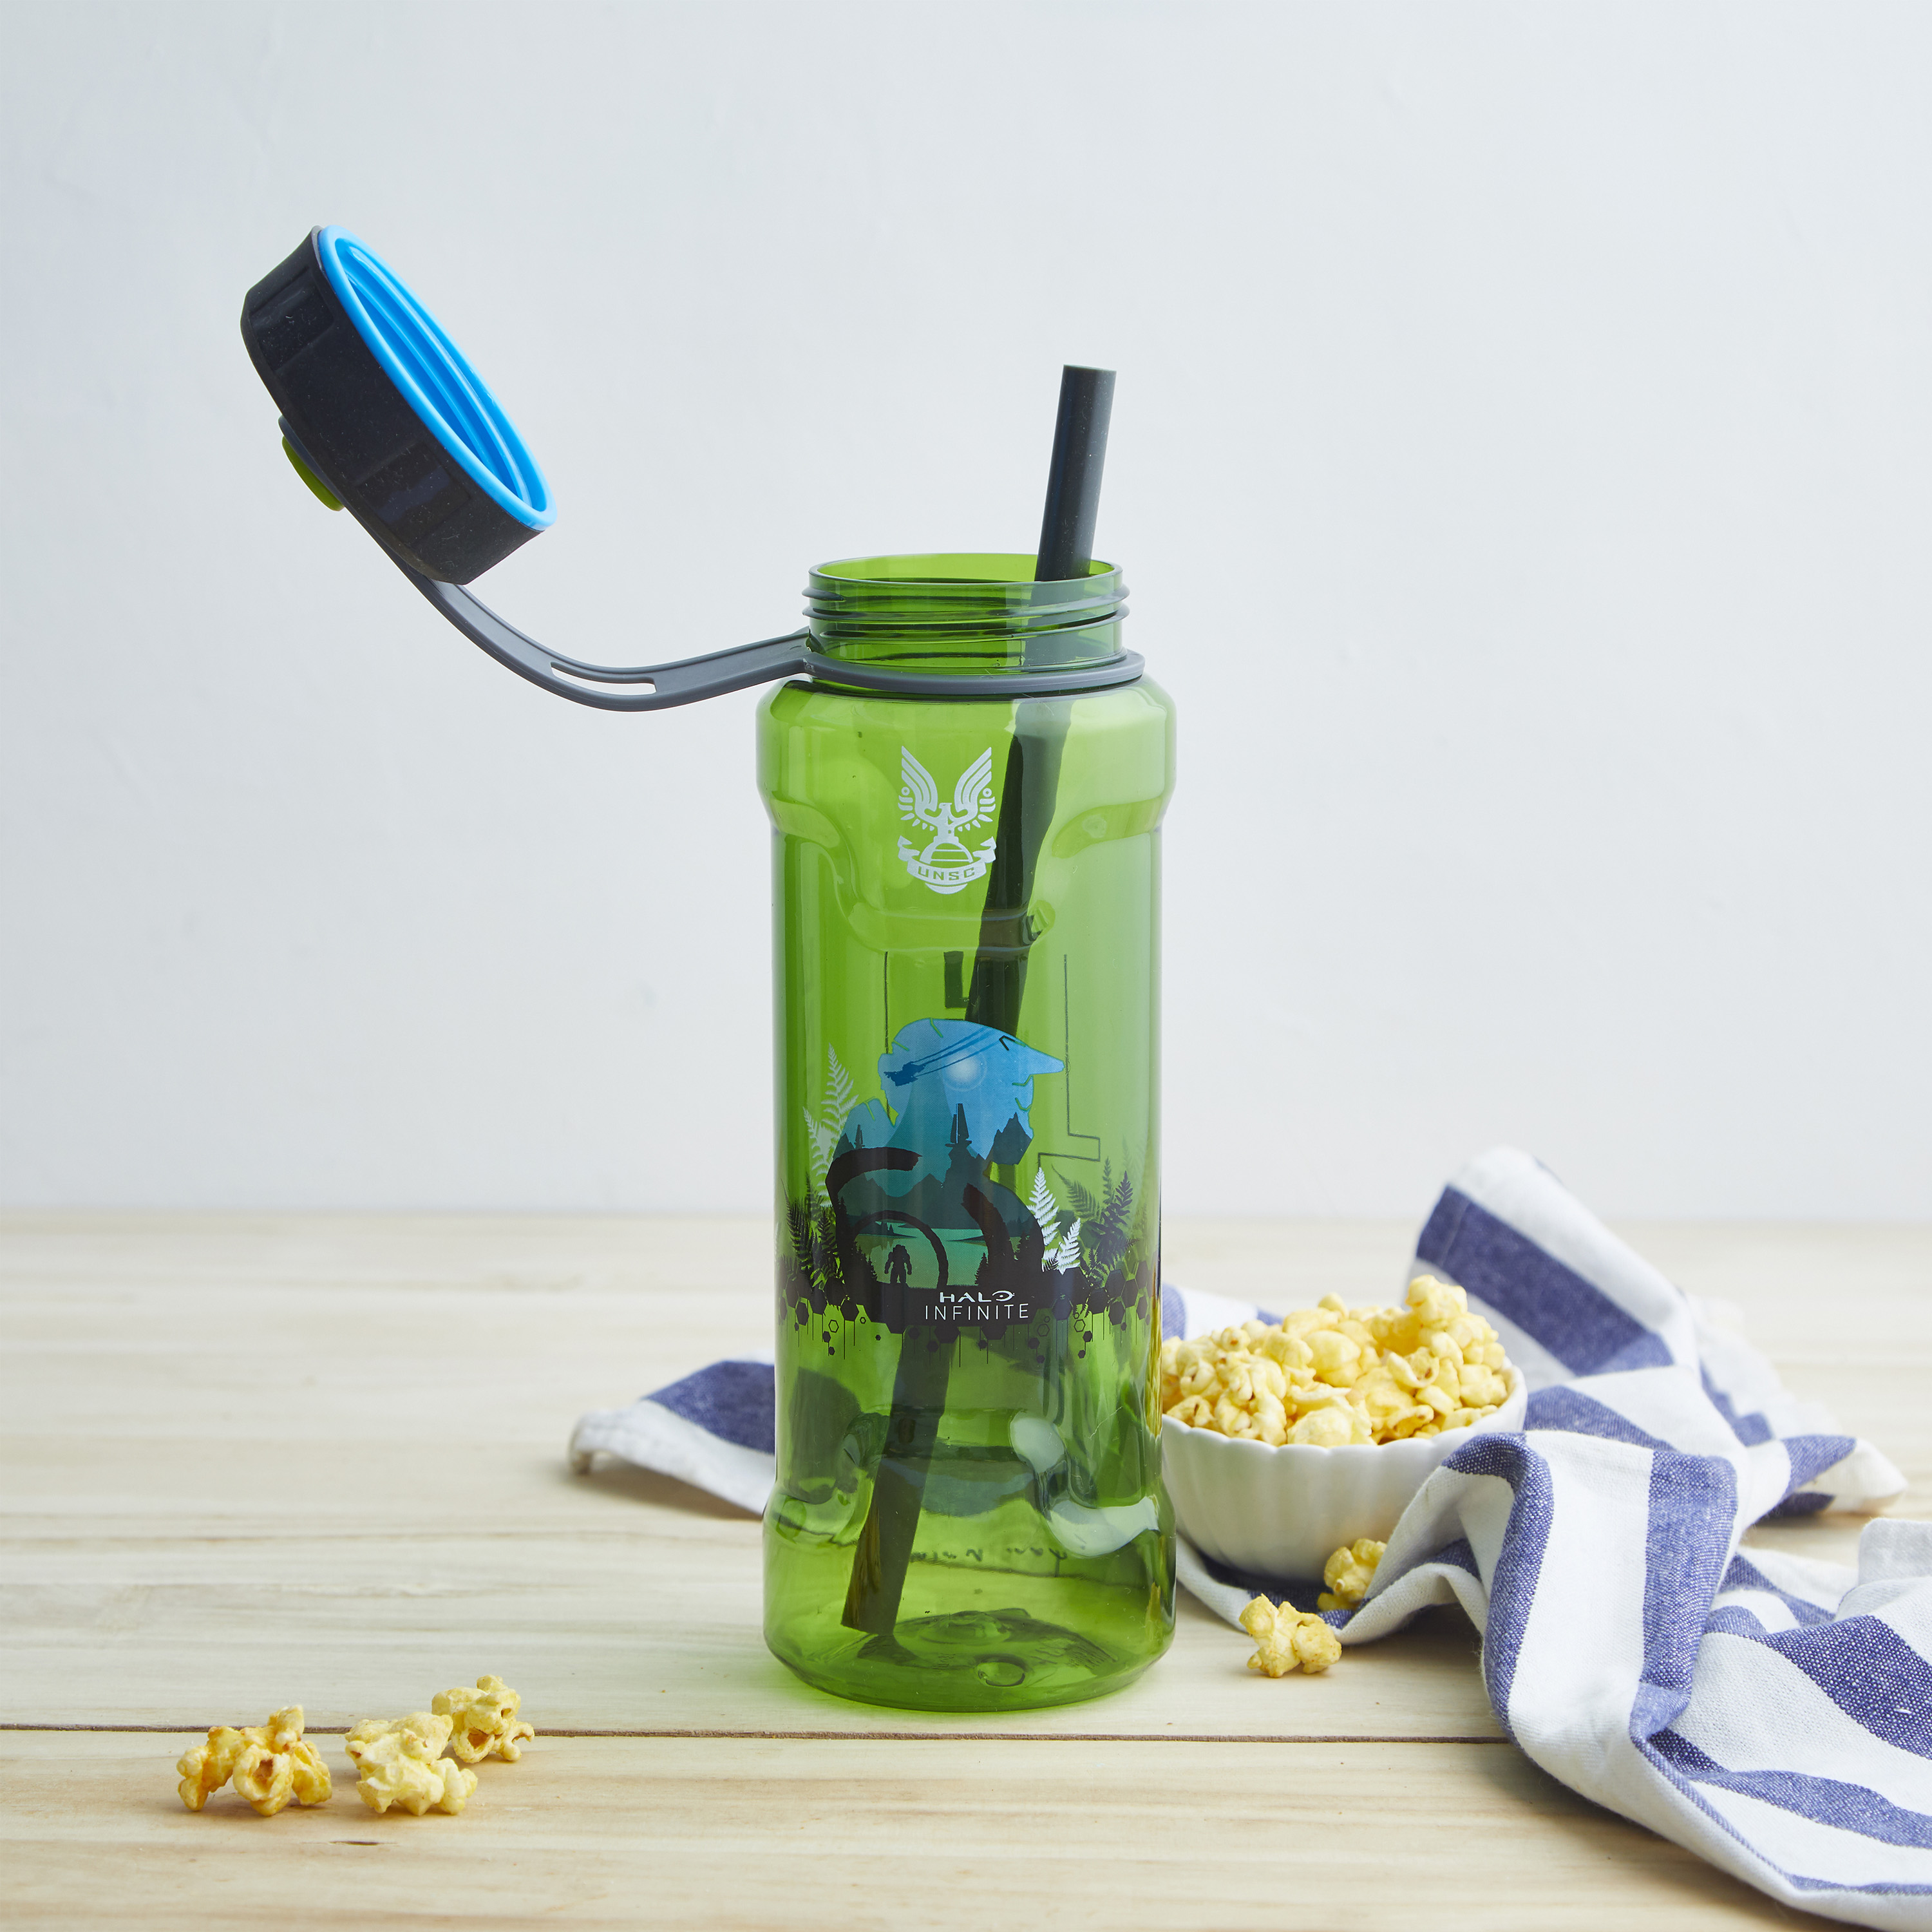 Halo 36 ounce Reusable Plastic Water Bottle, United Nations Space Command slideshow image 6